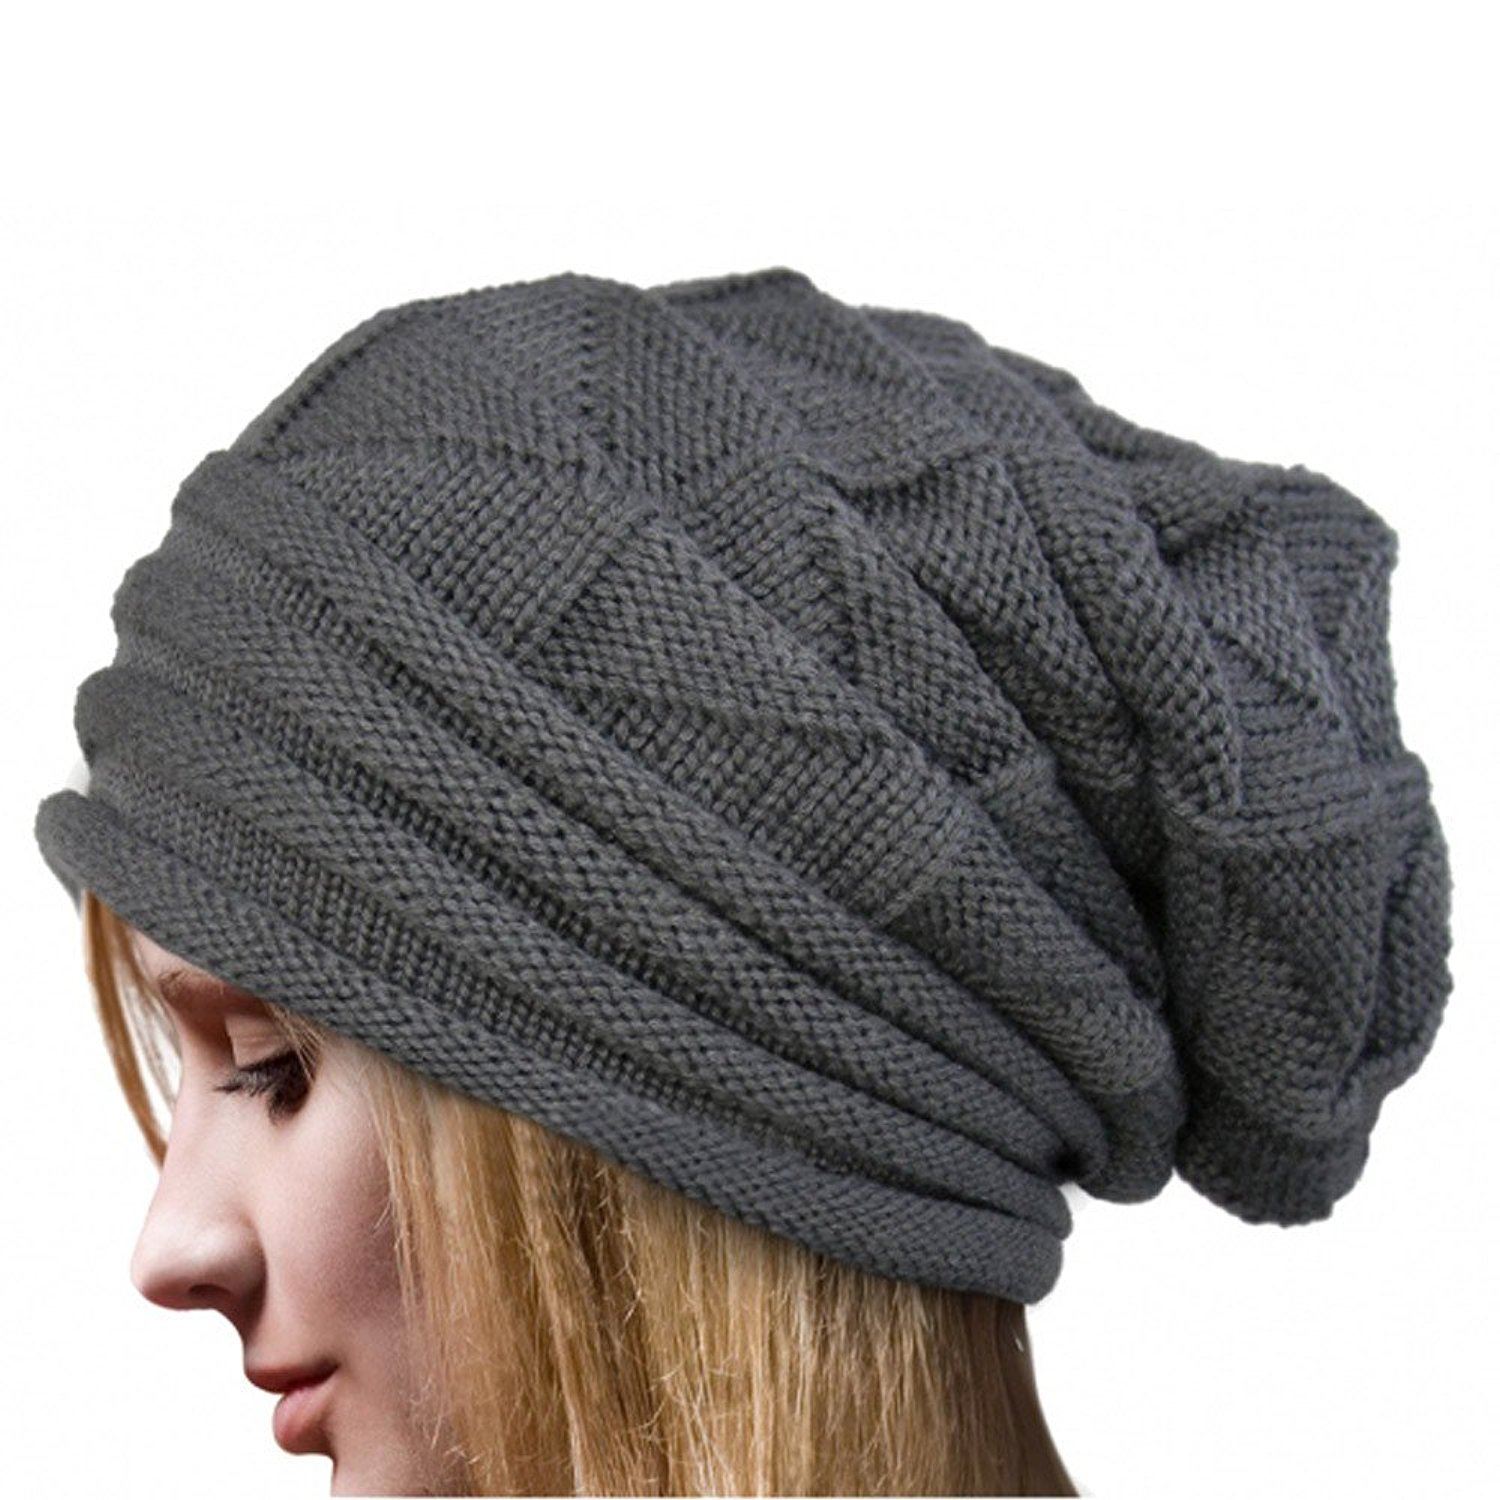 AStorePlus Winter Knit Hat - Unisex Warm Knitted Baggy Beret Hat Oversized Ski Beanie Cap, Coffee, Khaki, Black, Grey, Beige, Red, Dark Grey